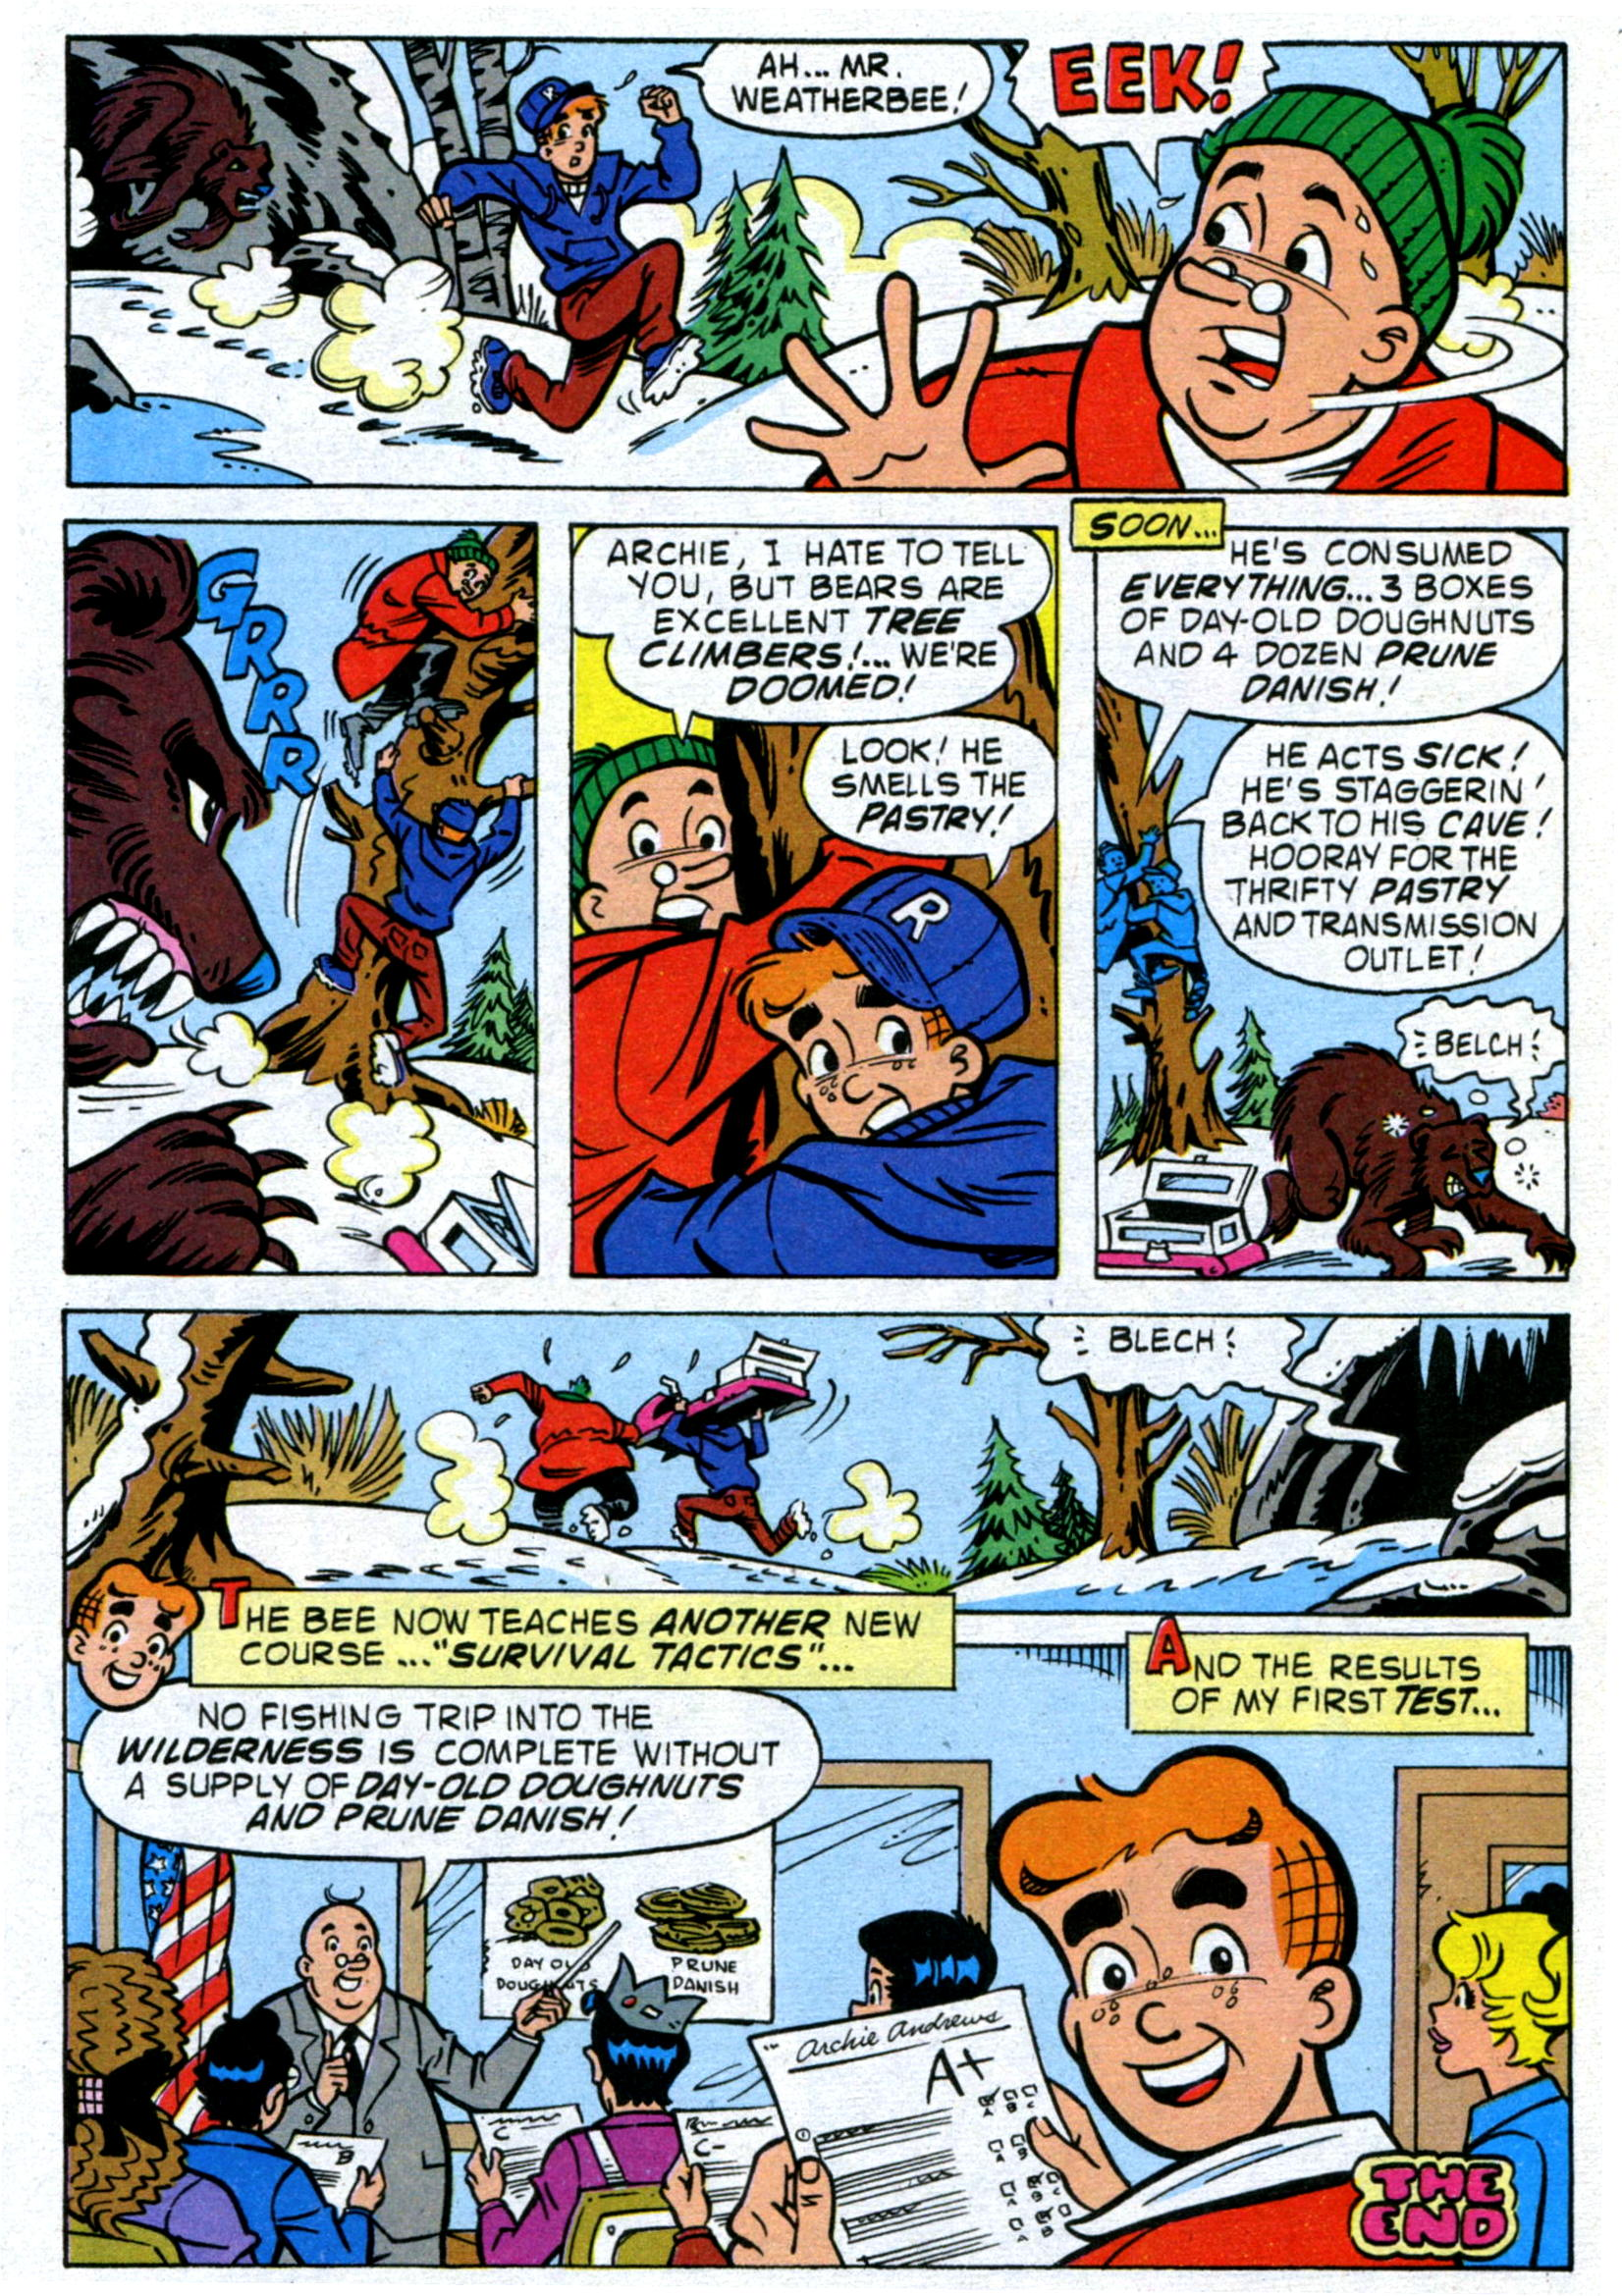 Read online World of Archie comic -  Issue #14 - 24